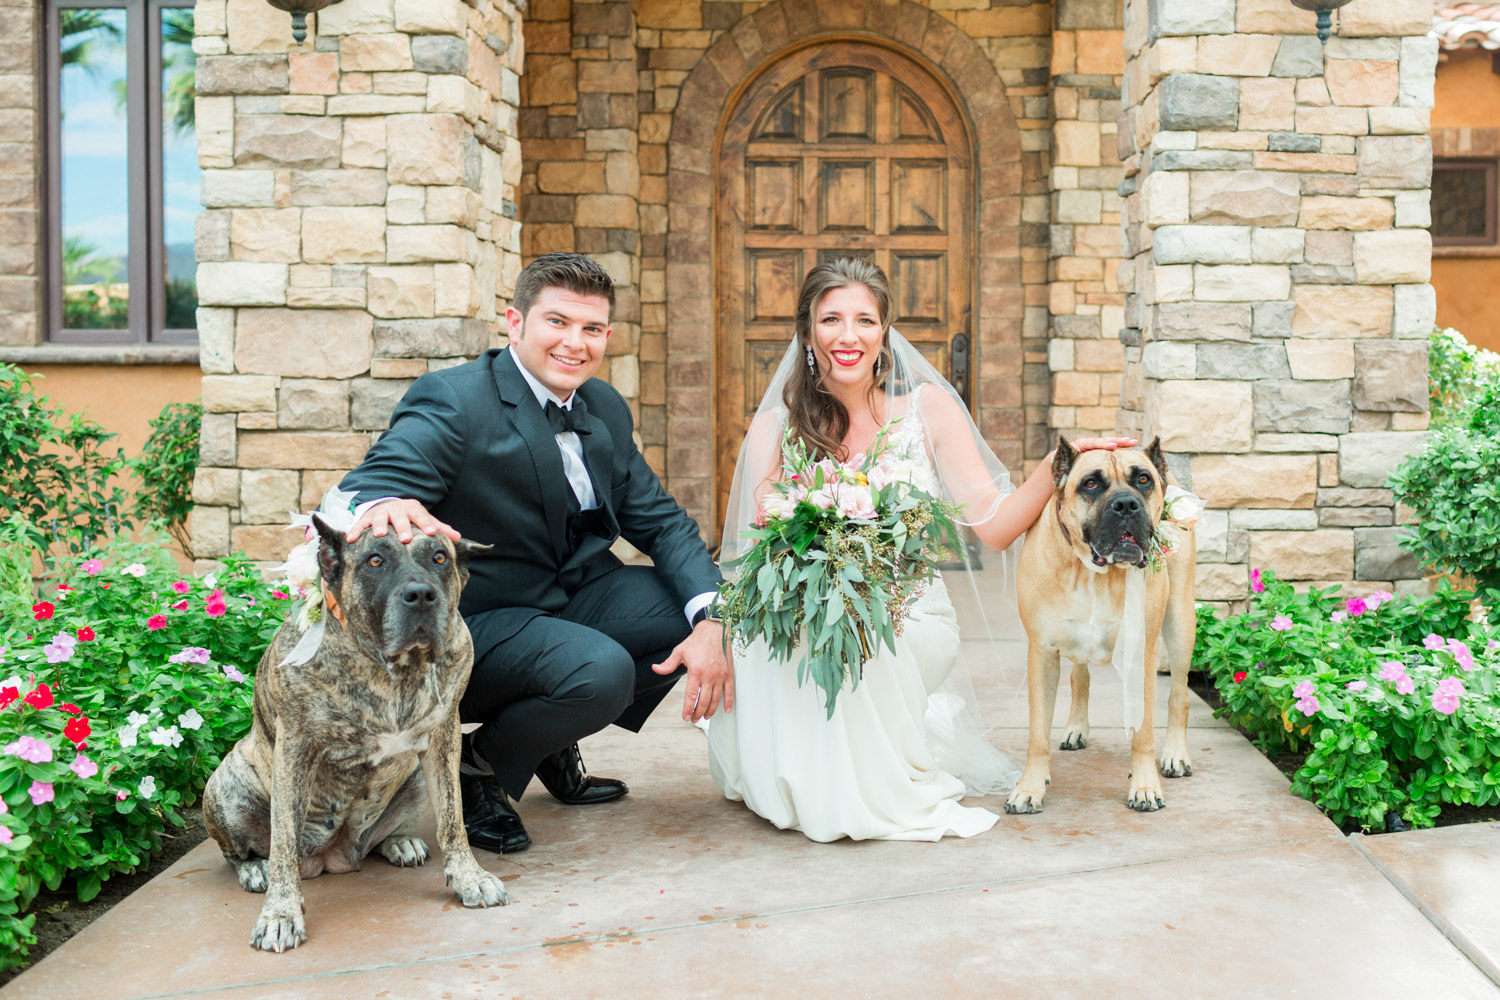 Bride and groom with their dogs wearing flower collars, Cavin Elizabeth Photography